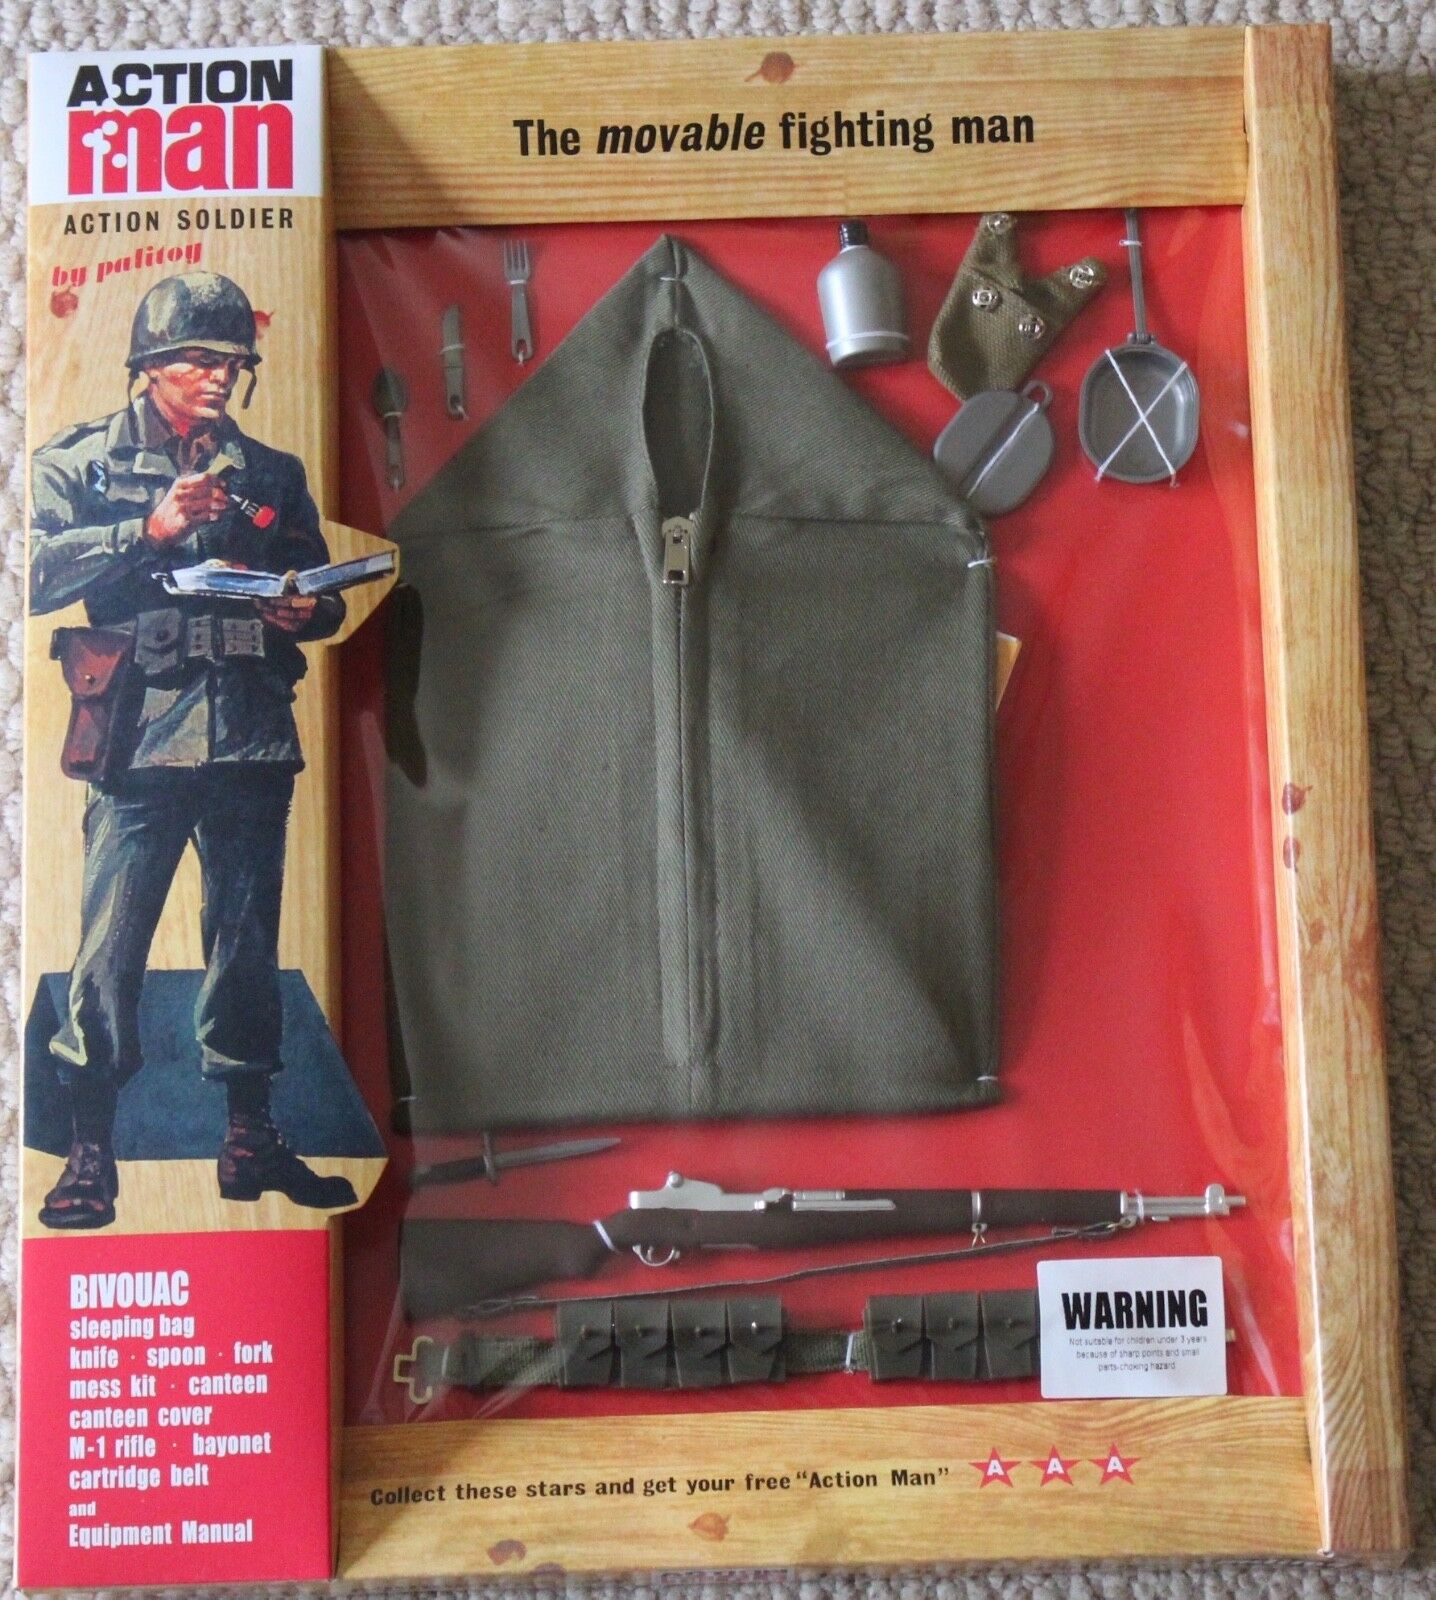 Vintage action man 40th anniversary bivouac sleeping bag set card boxed